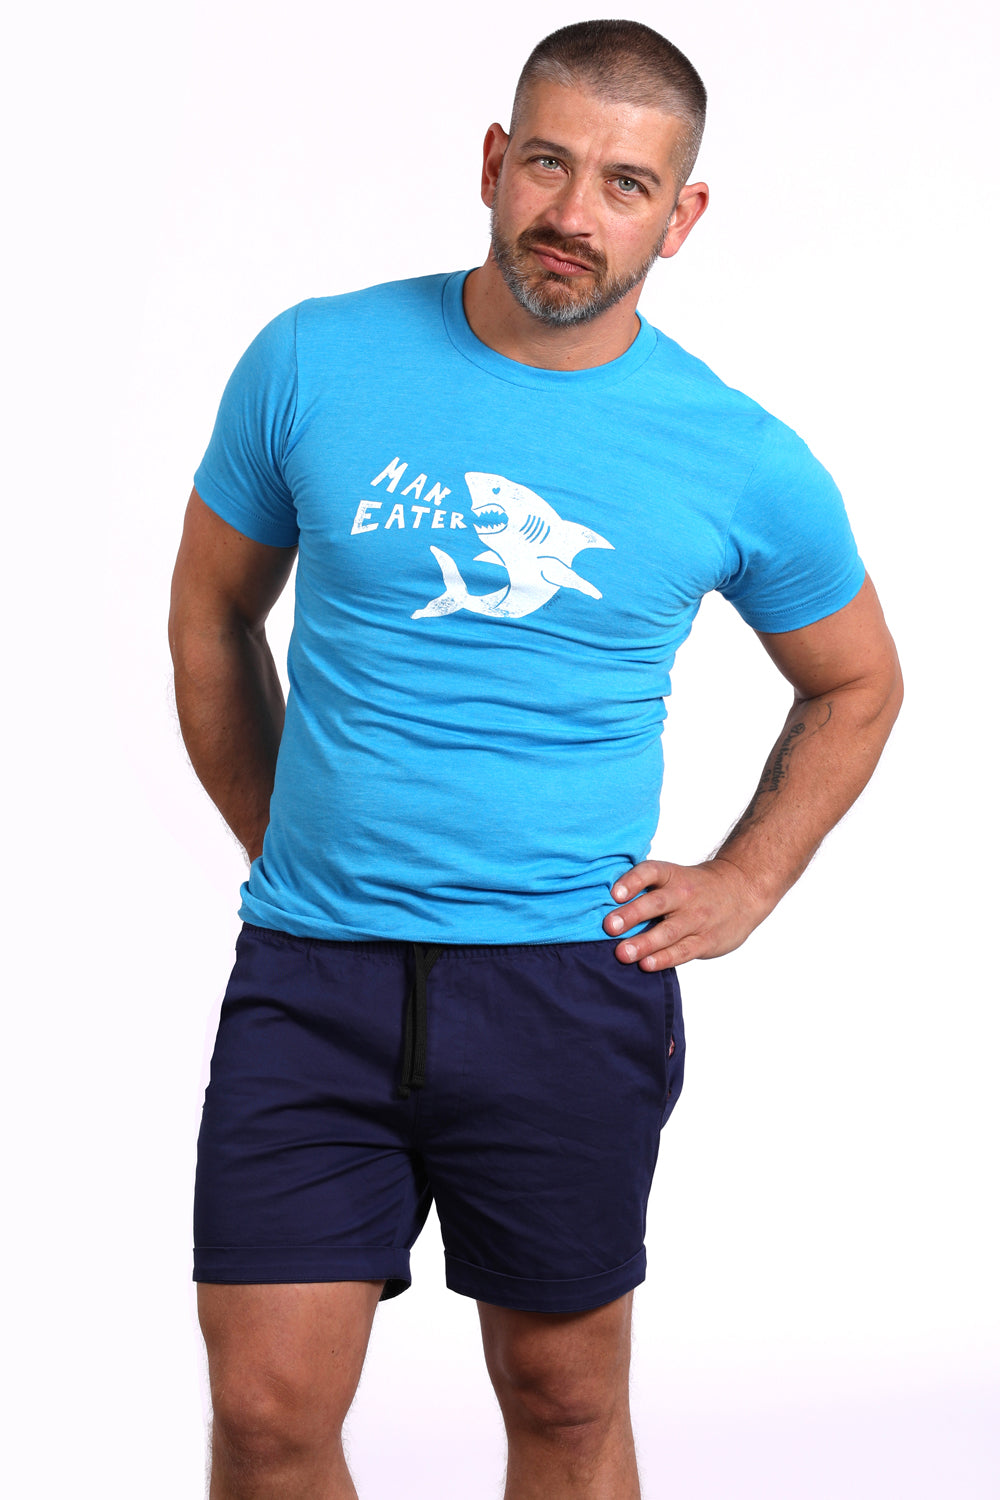 Provincetown Aqua 'ManEater' Shark Tee One Piece Size M Available